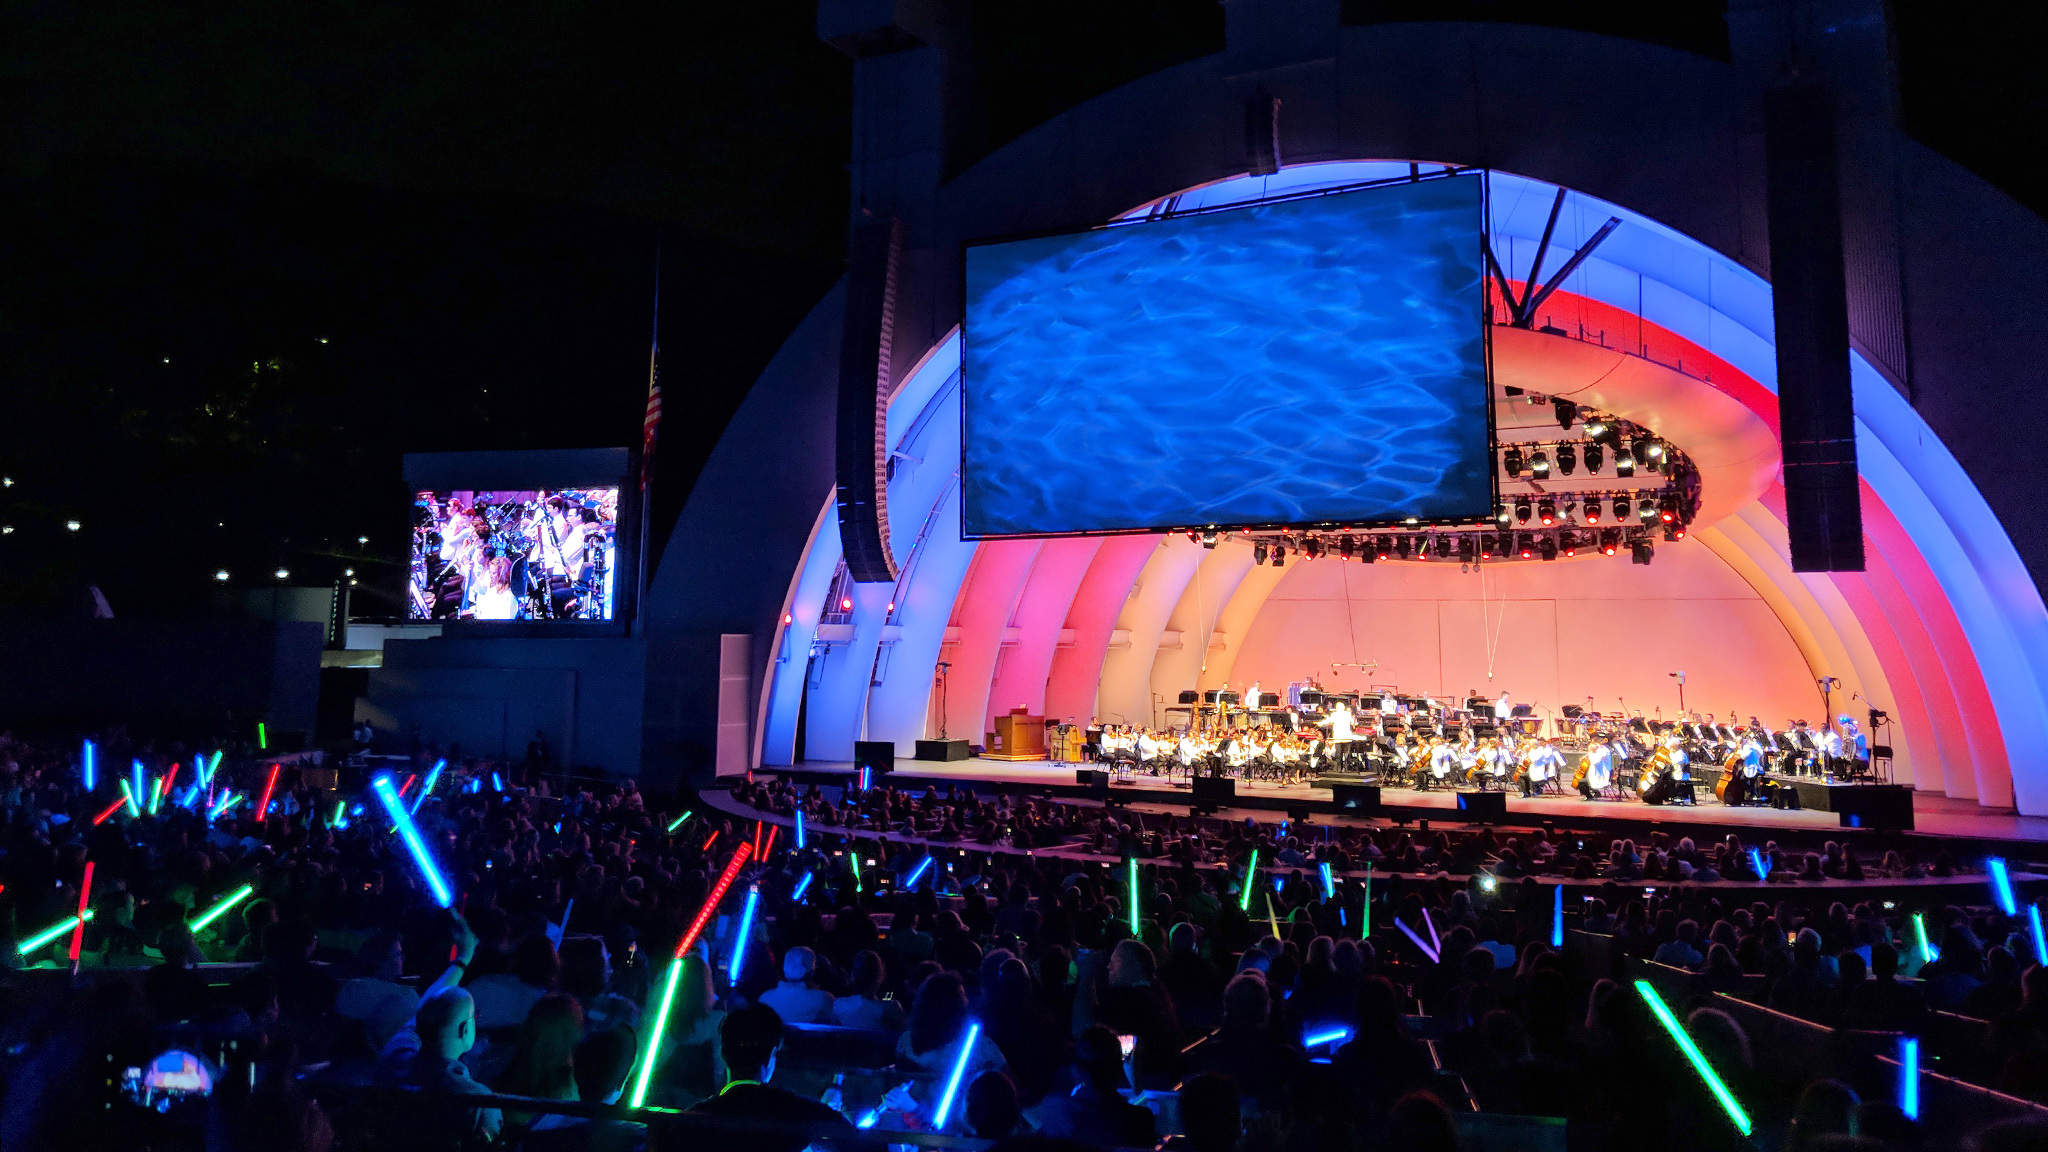 This summer's Hollywood Bowl season is canceled for the first time ever